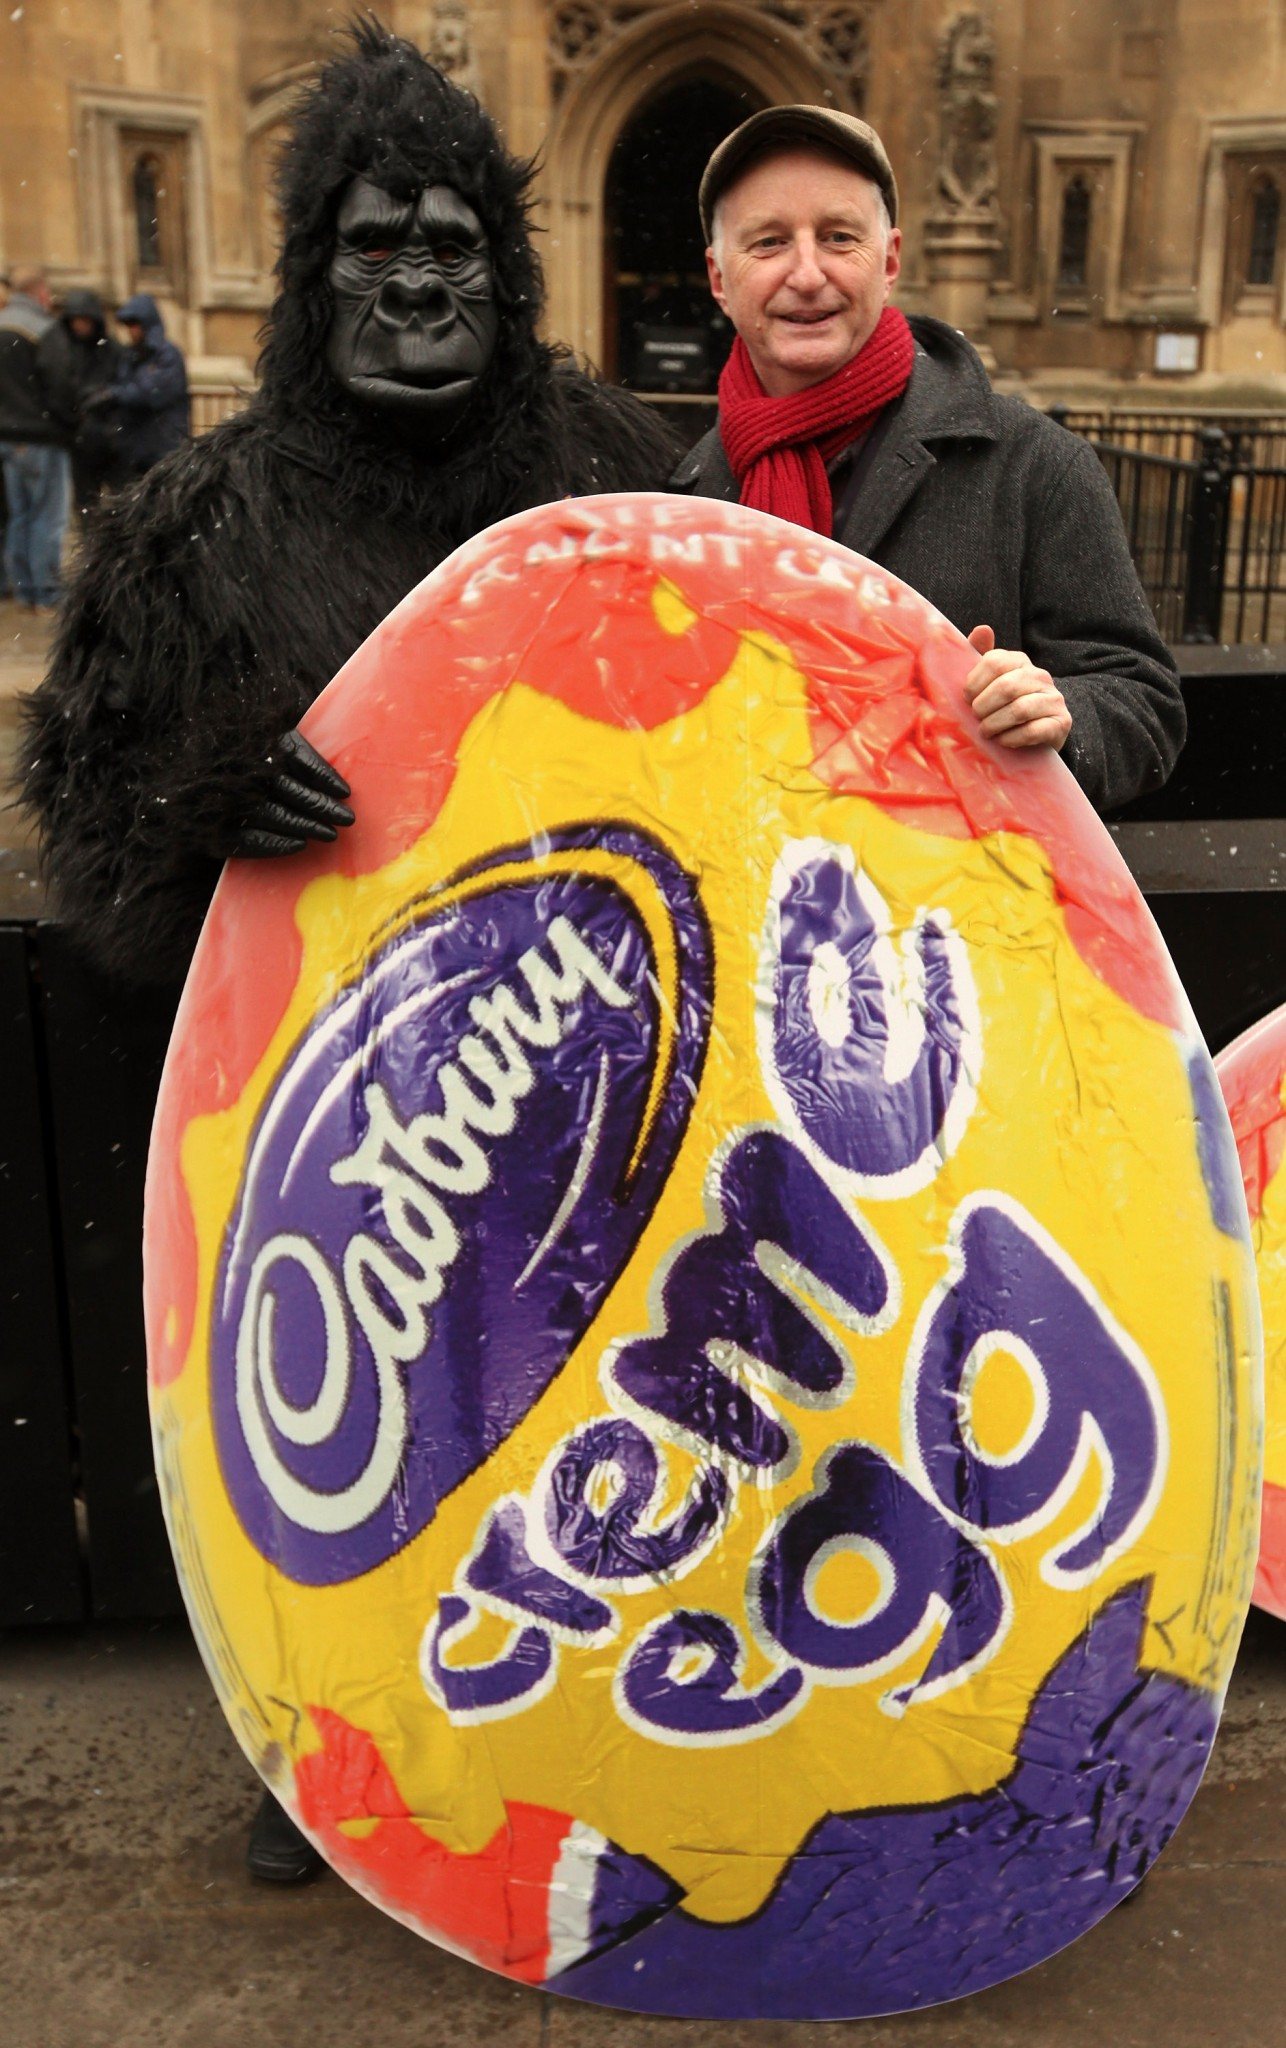 Creme Egg makers Cadbury have been accused of tax dodging